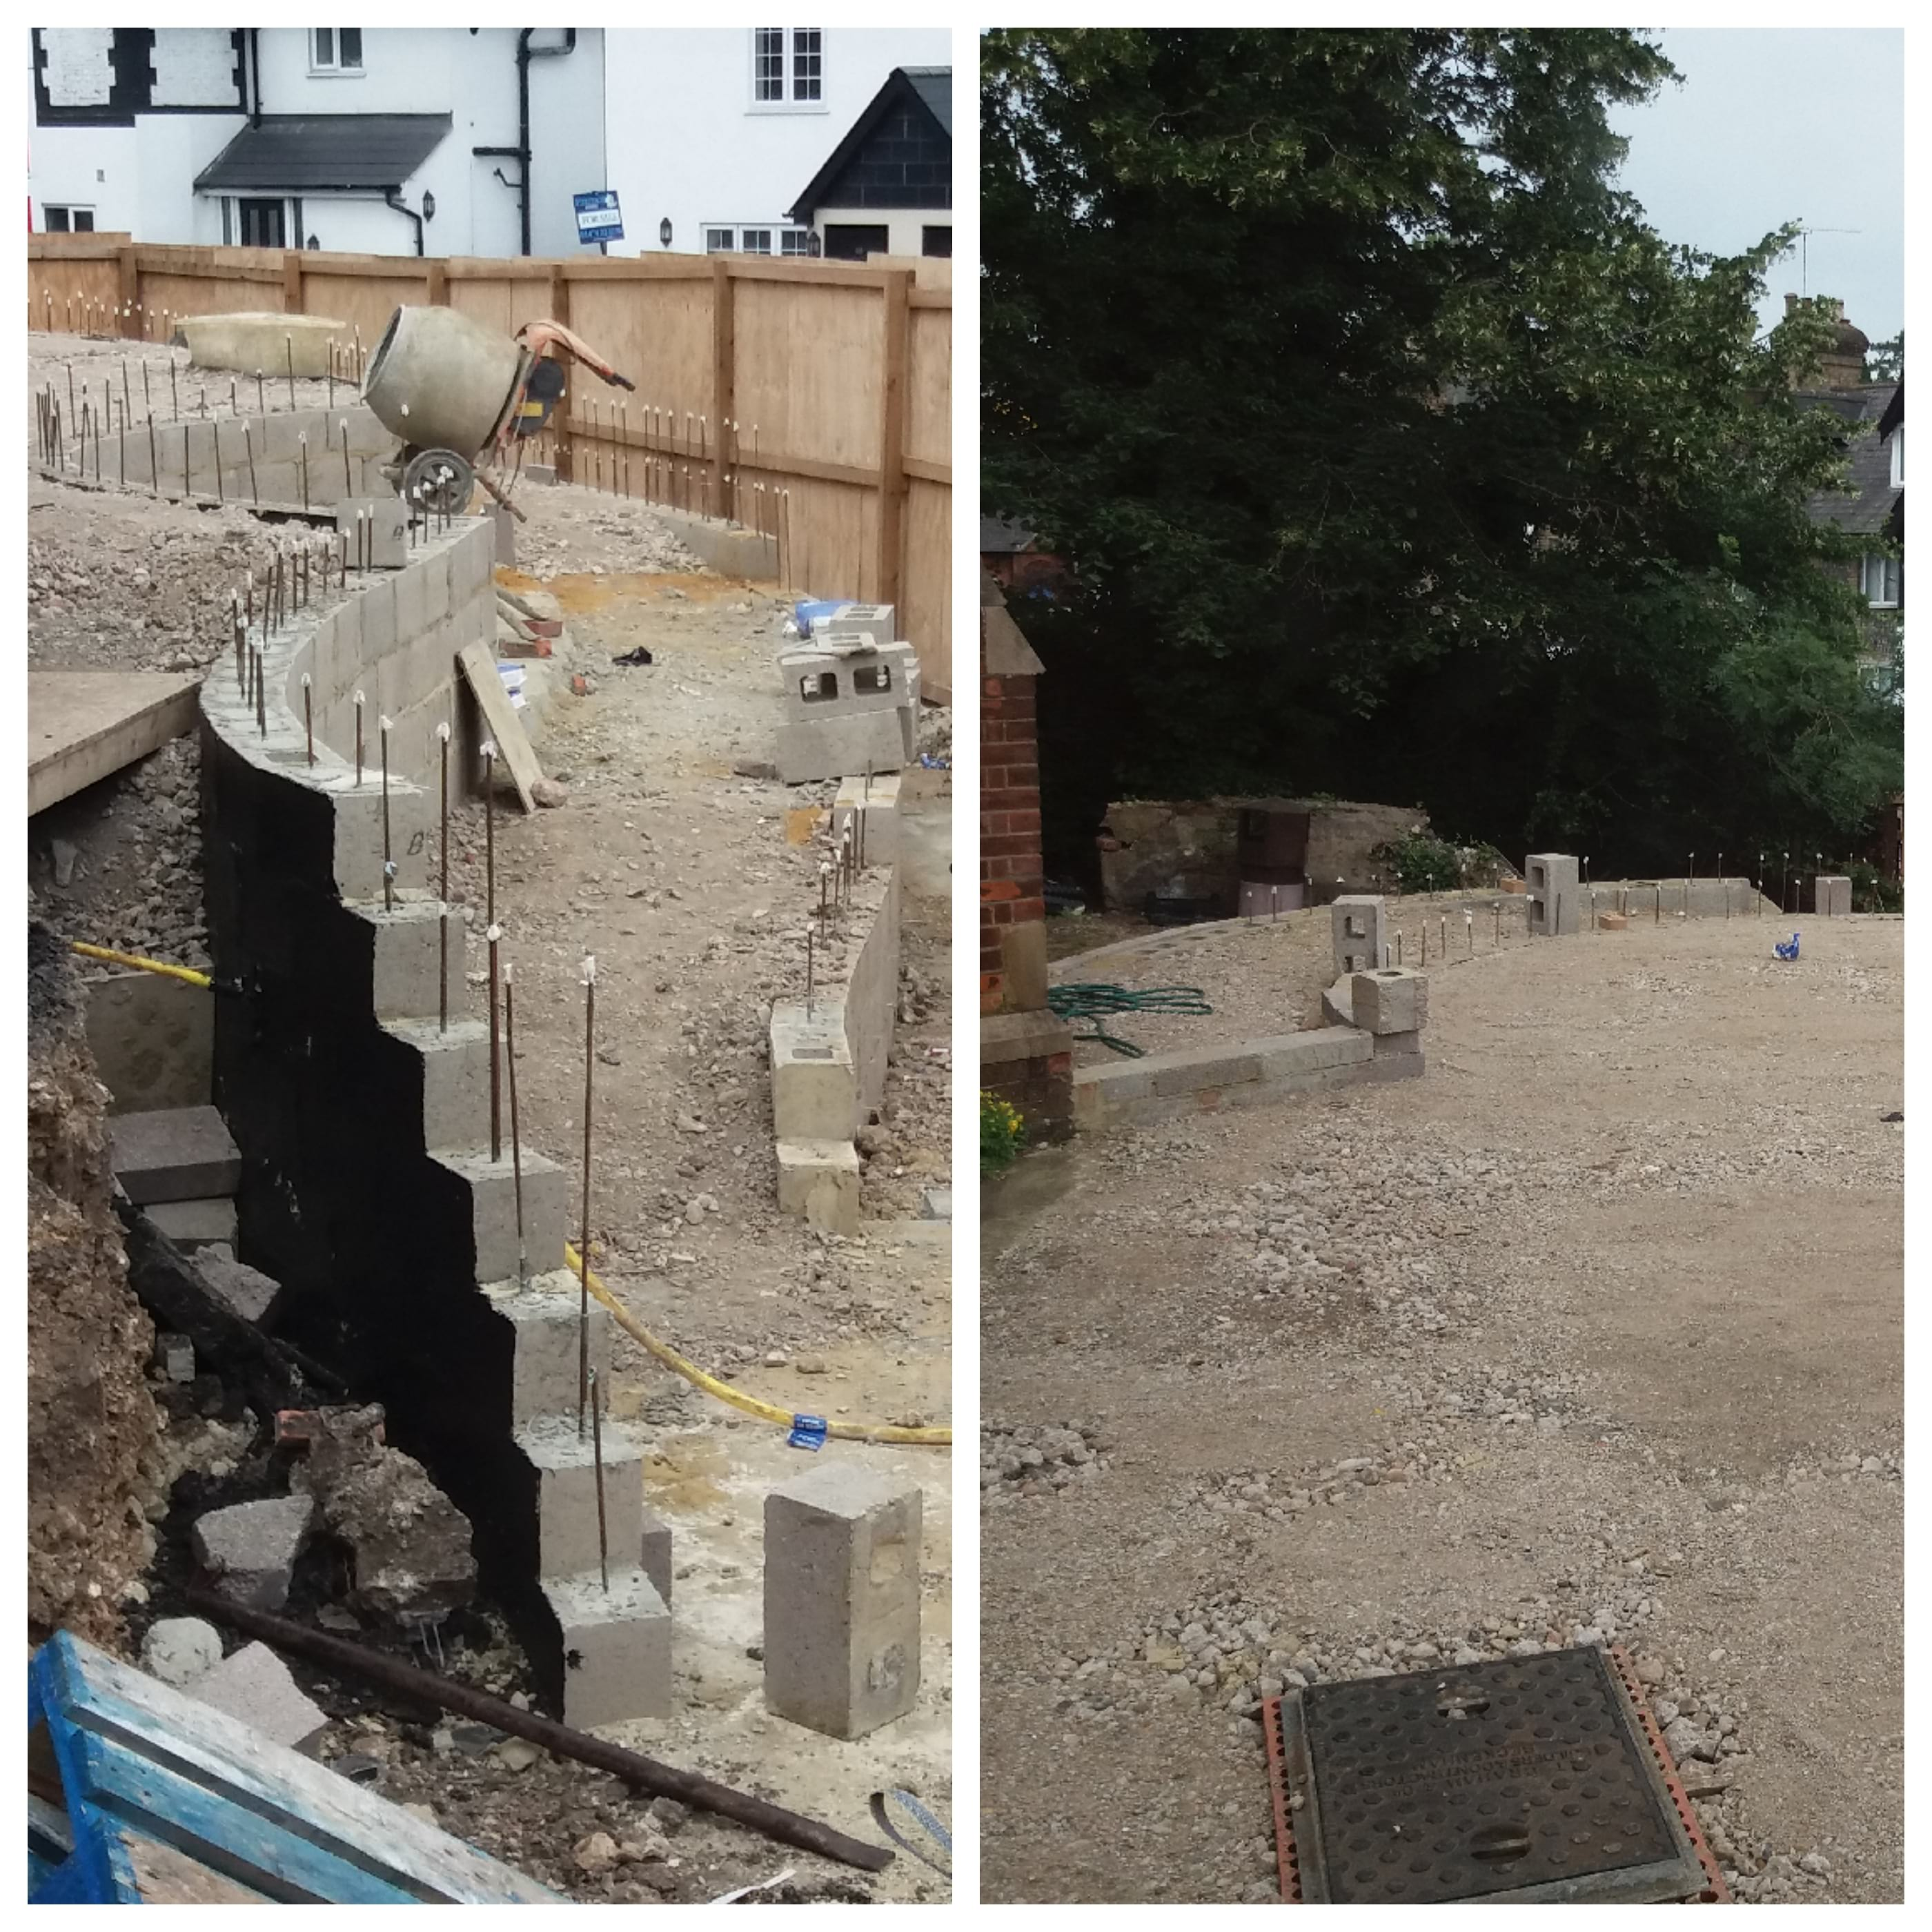 14.07.19 - Views of the works behind our hoarding at the front of the church. The curved ramp is taking shape and the landing area is now levelled.